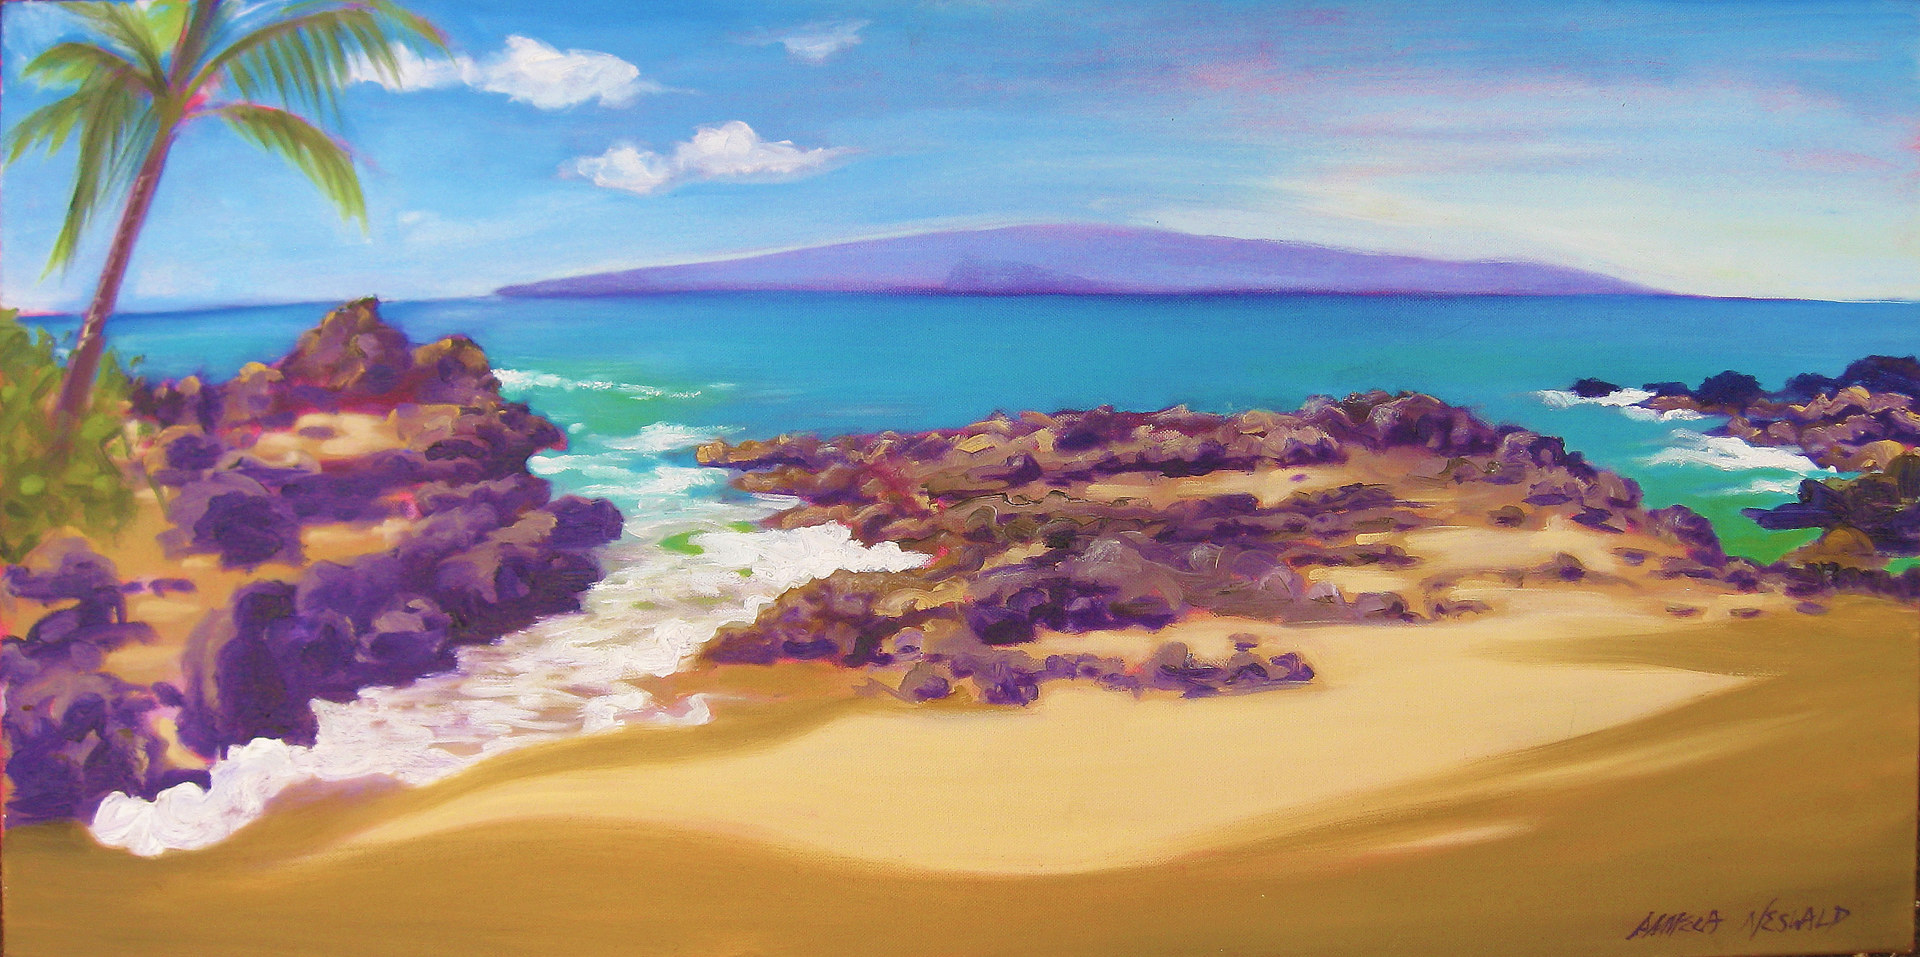 Oil painting Big Secret Beach  by Pamela Neswald